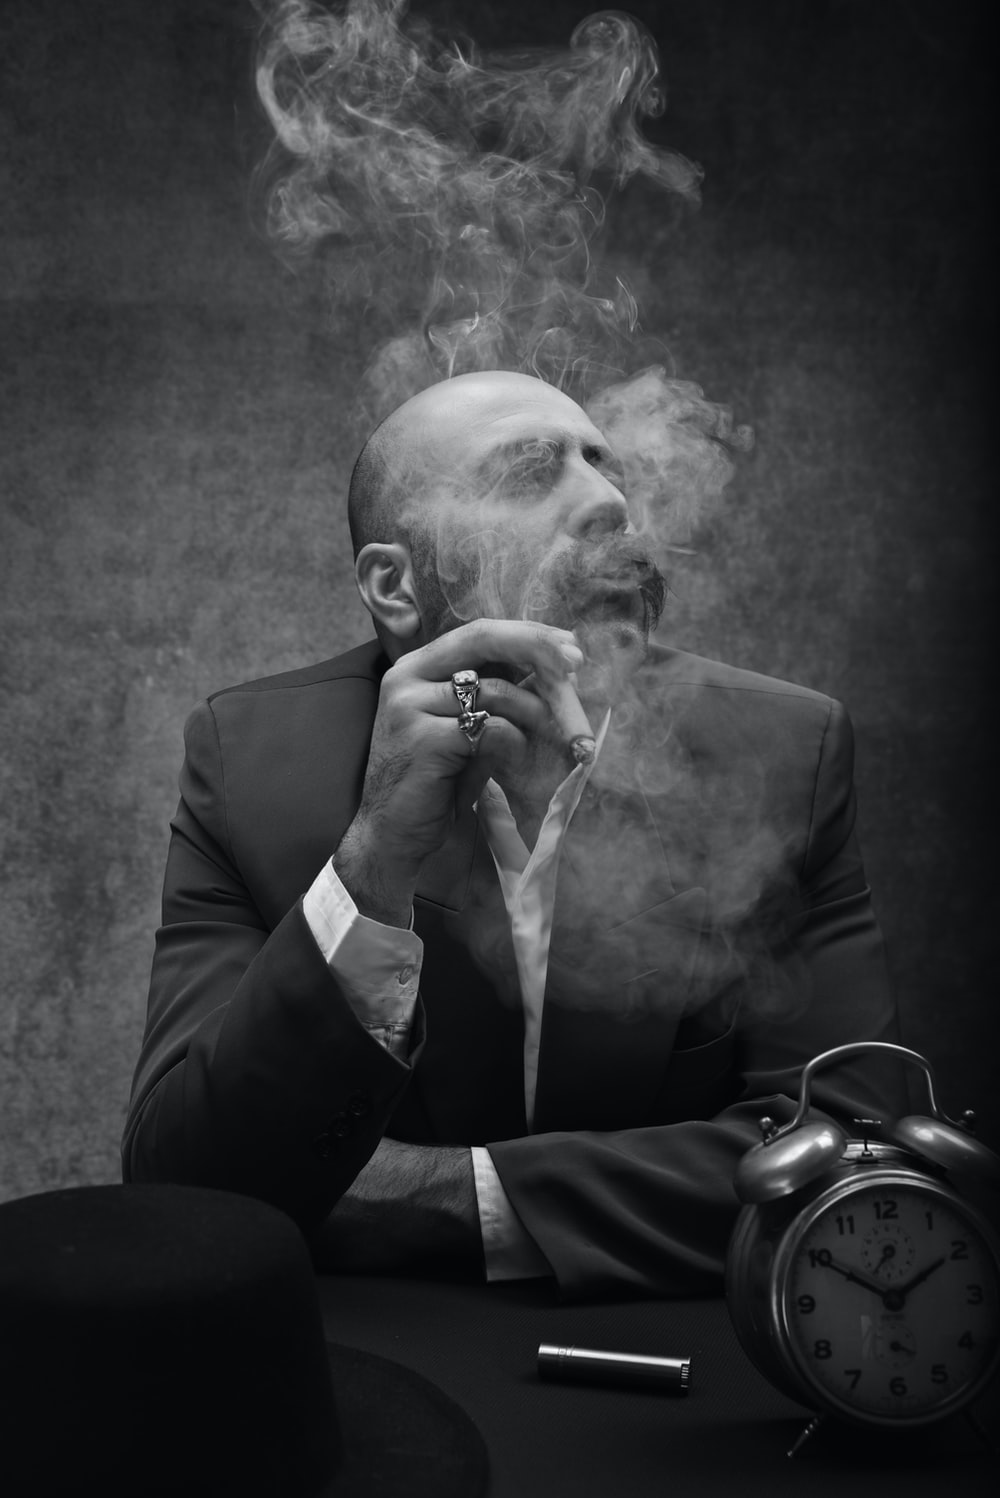 man wearing black suit sitting by the table smoking